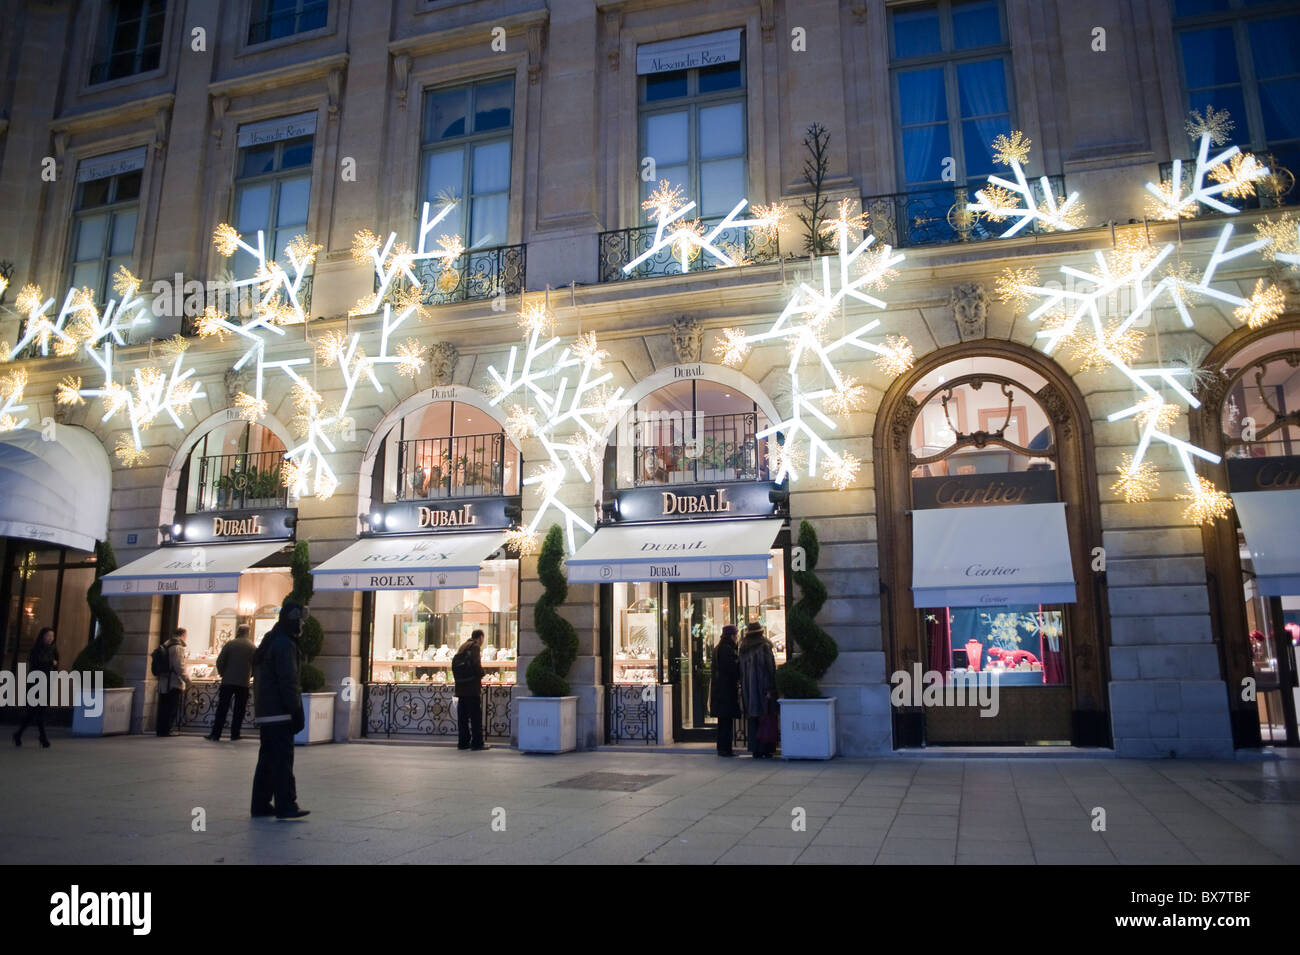 paris france luxury christmas lights shopping dubail jewelry stock photo royalty free image. Black Bedroom Furniture Sets. Home Design Ideas